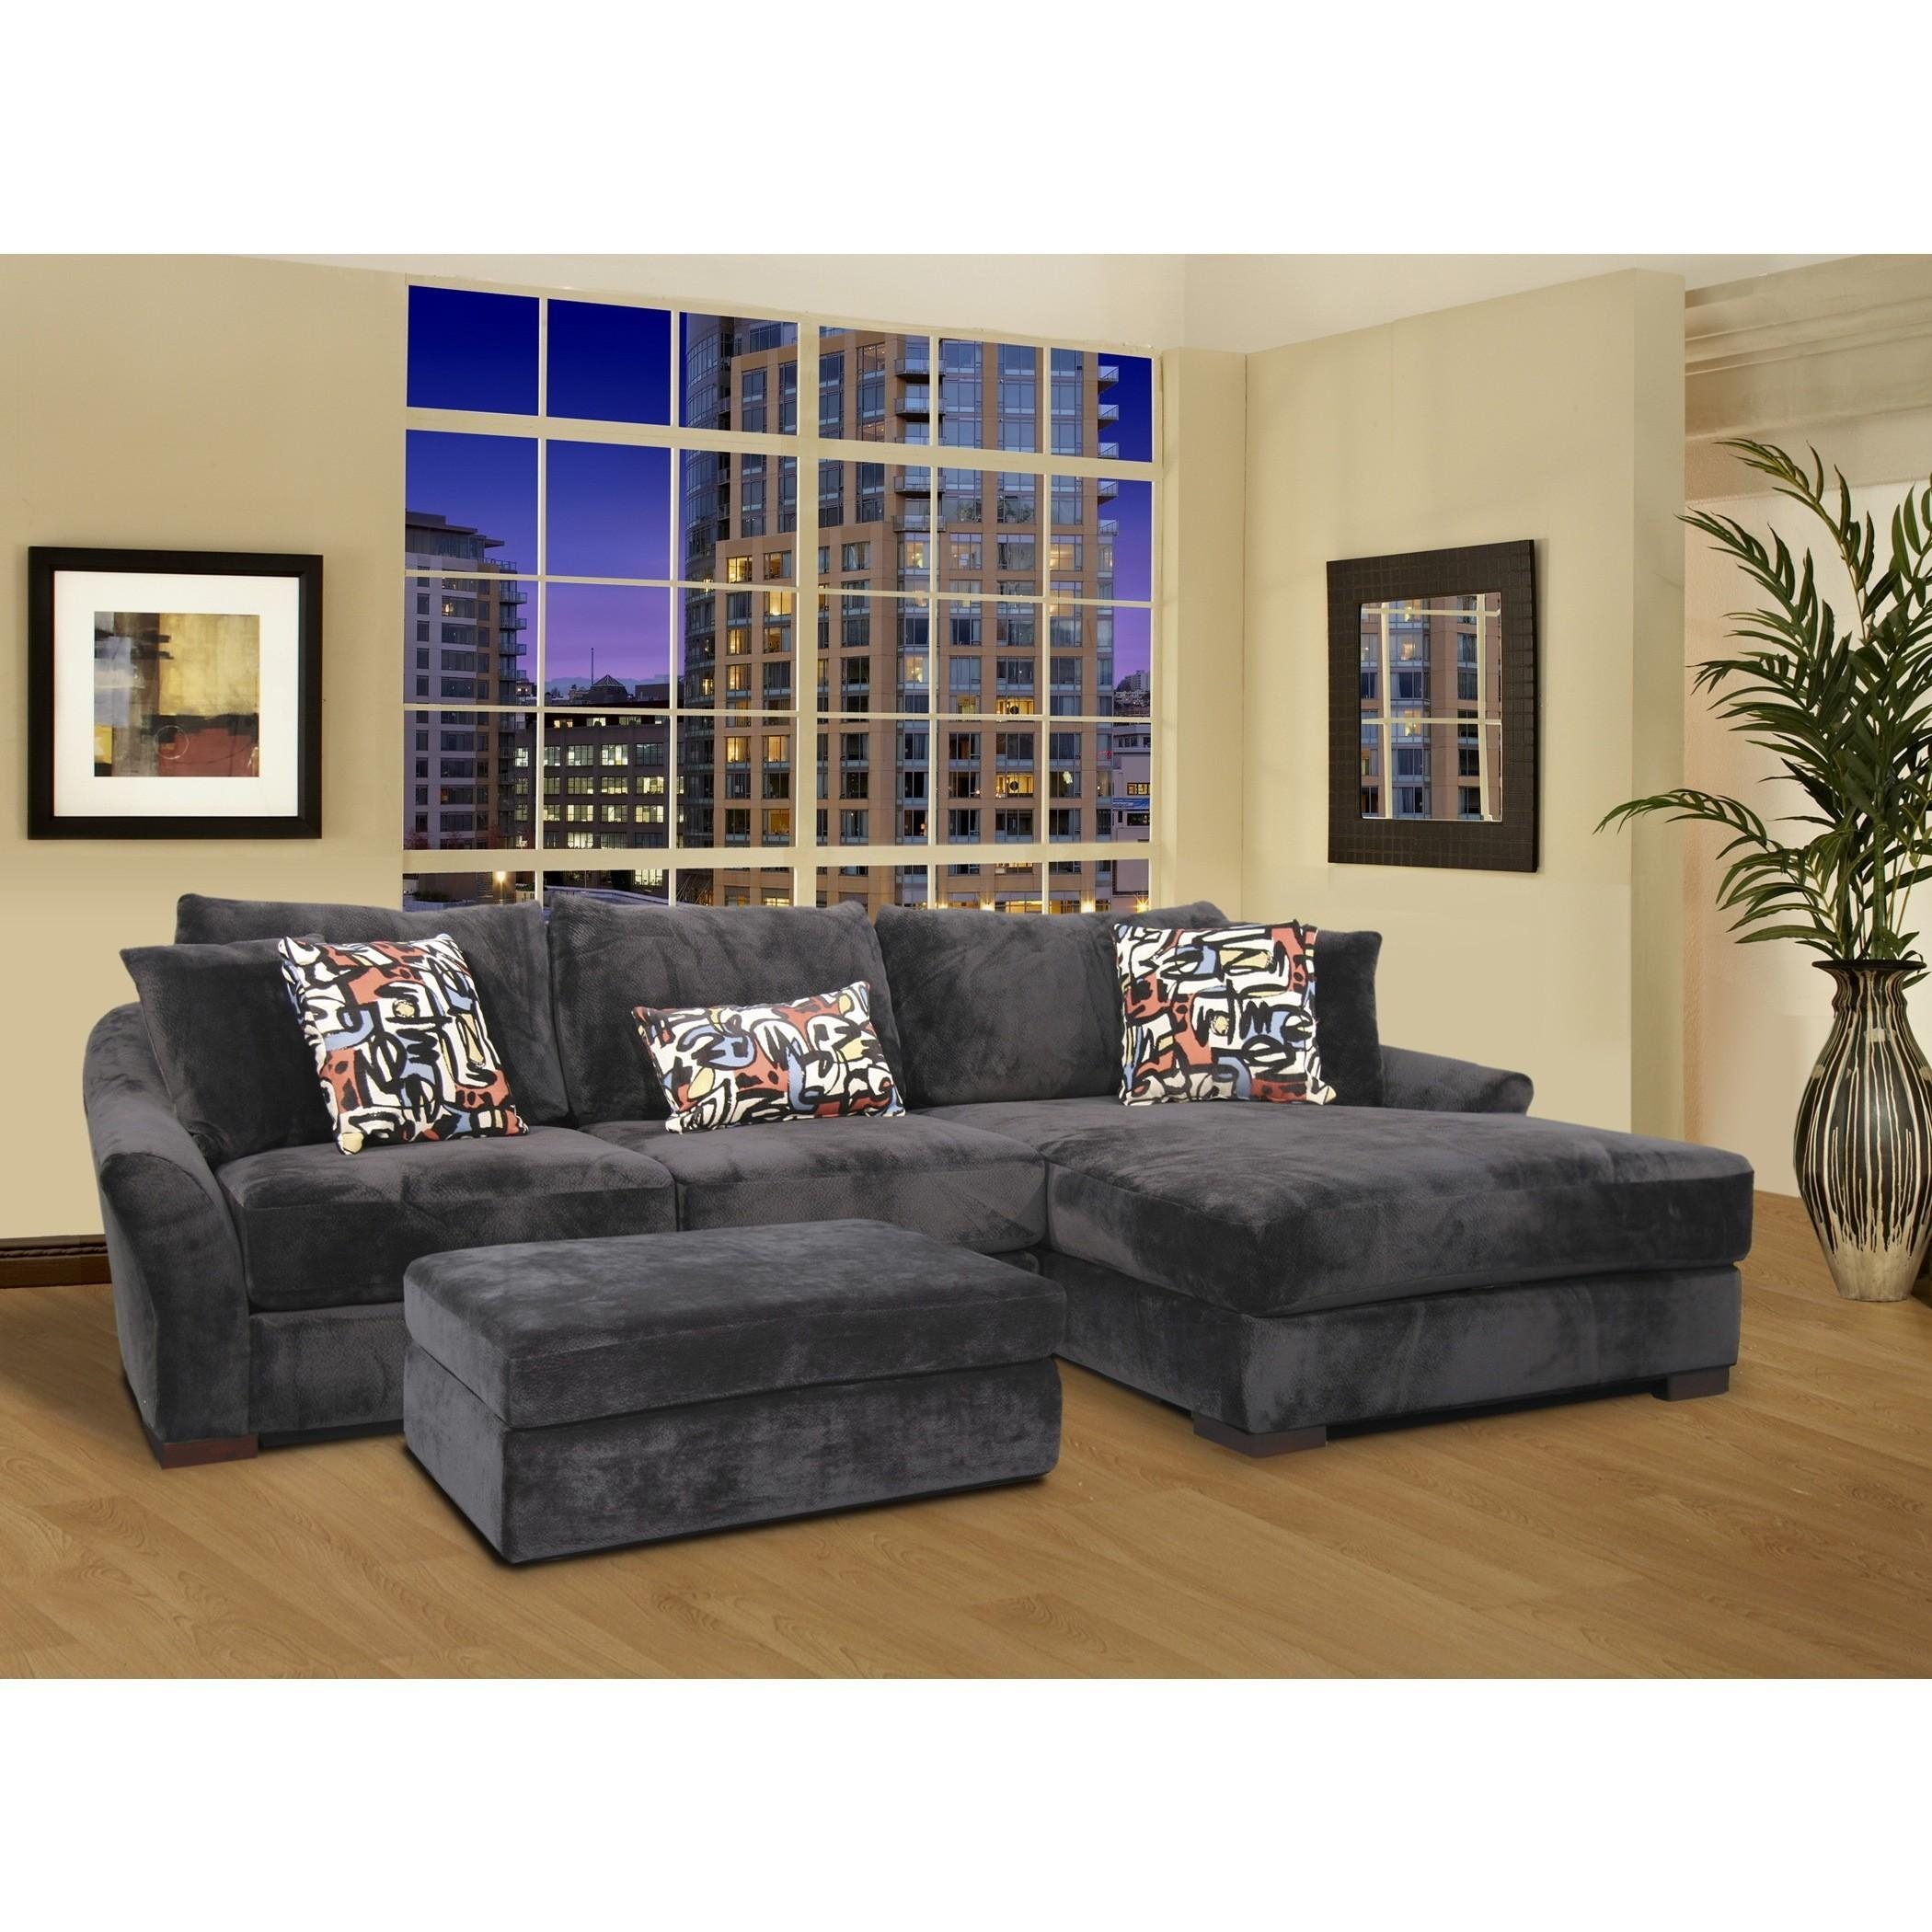 Furniture: Classic And Traditional Style Velvet Sectional Sofa For Within Brown Velvet Sofas (View 8 of 20)